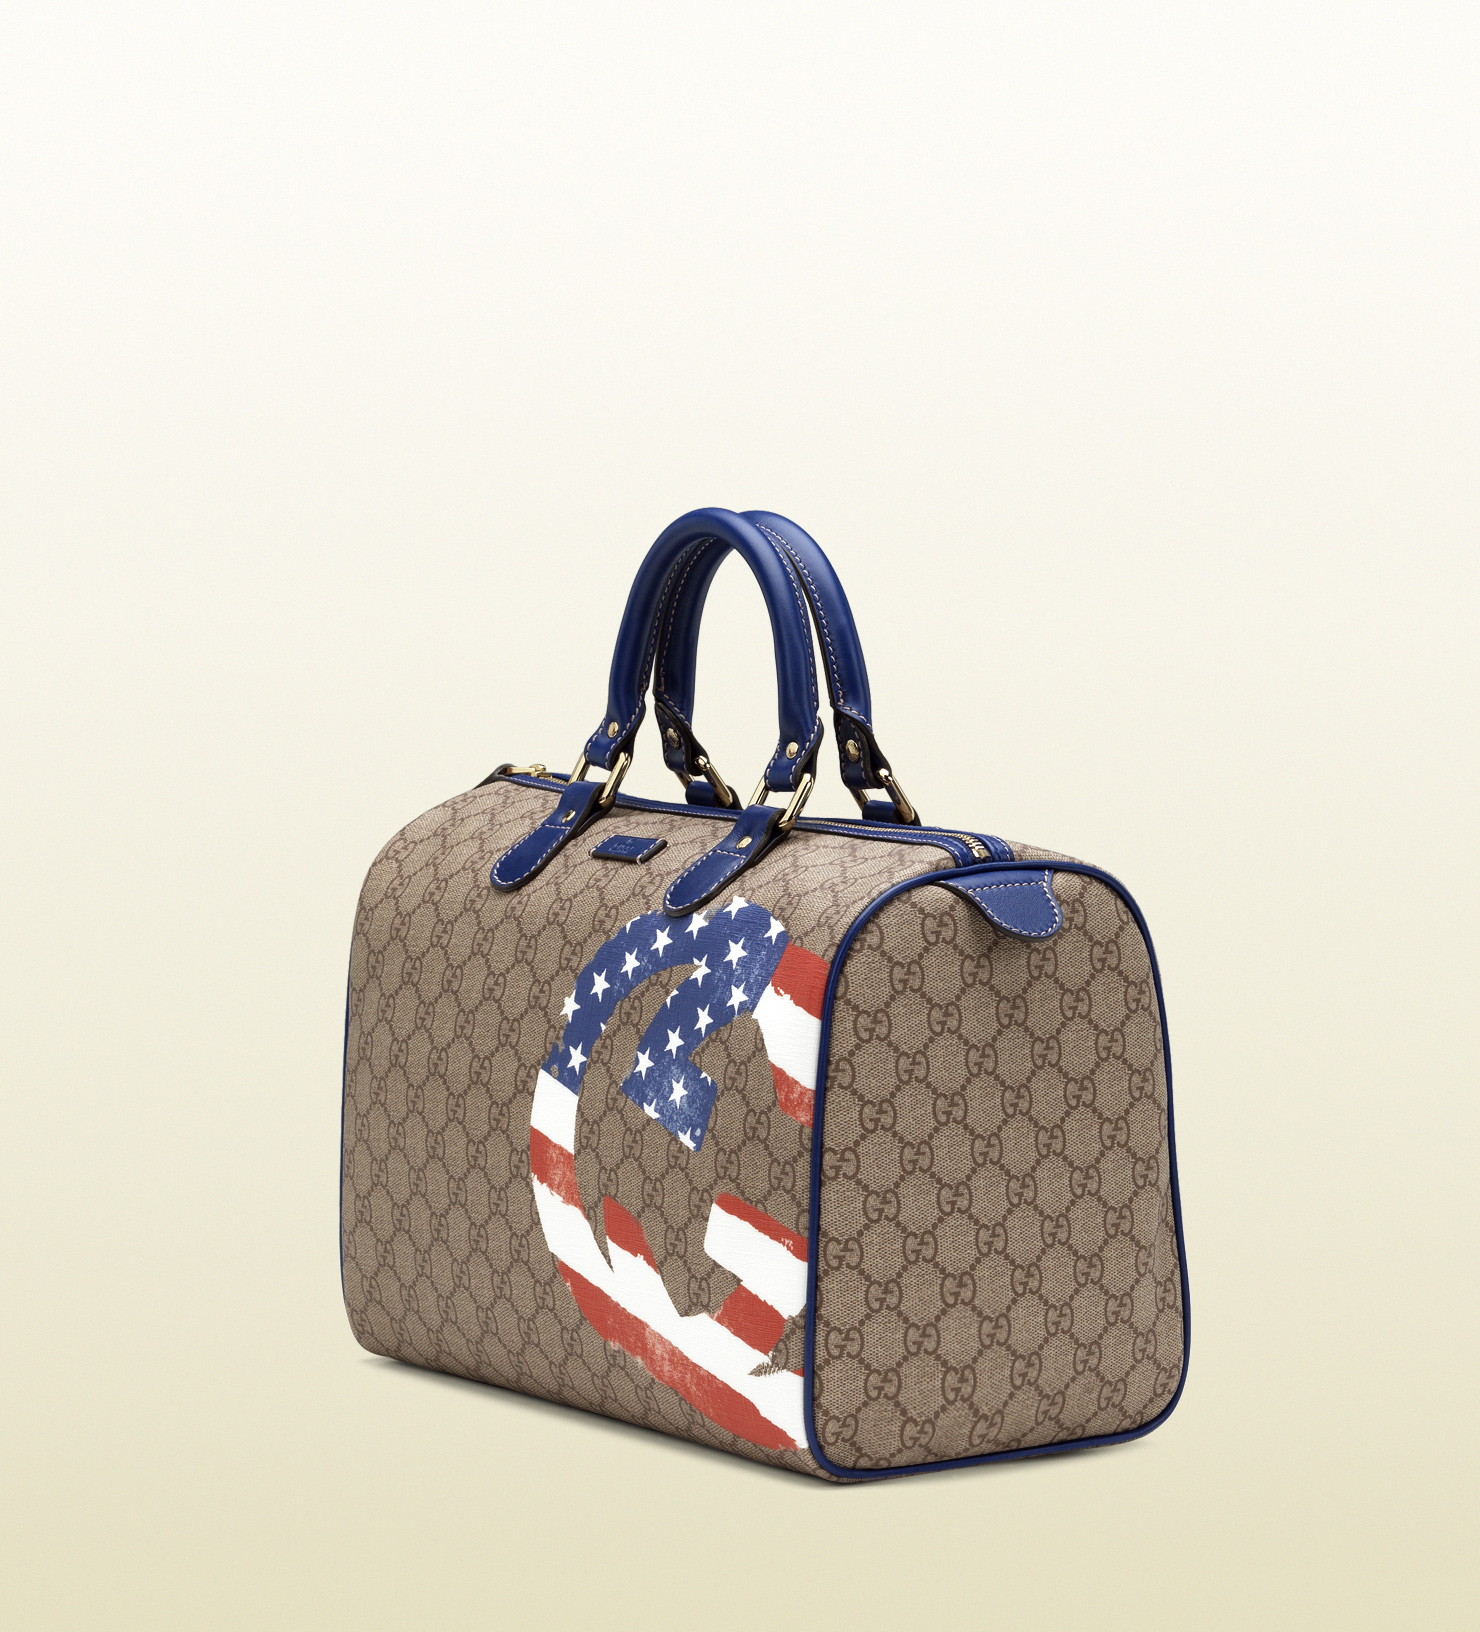 08df894c7970 Gucci Bags Online Usa   Stanford Center for Opportunity Policy in ...